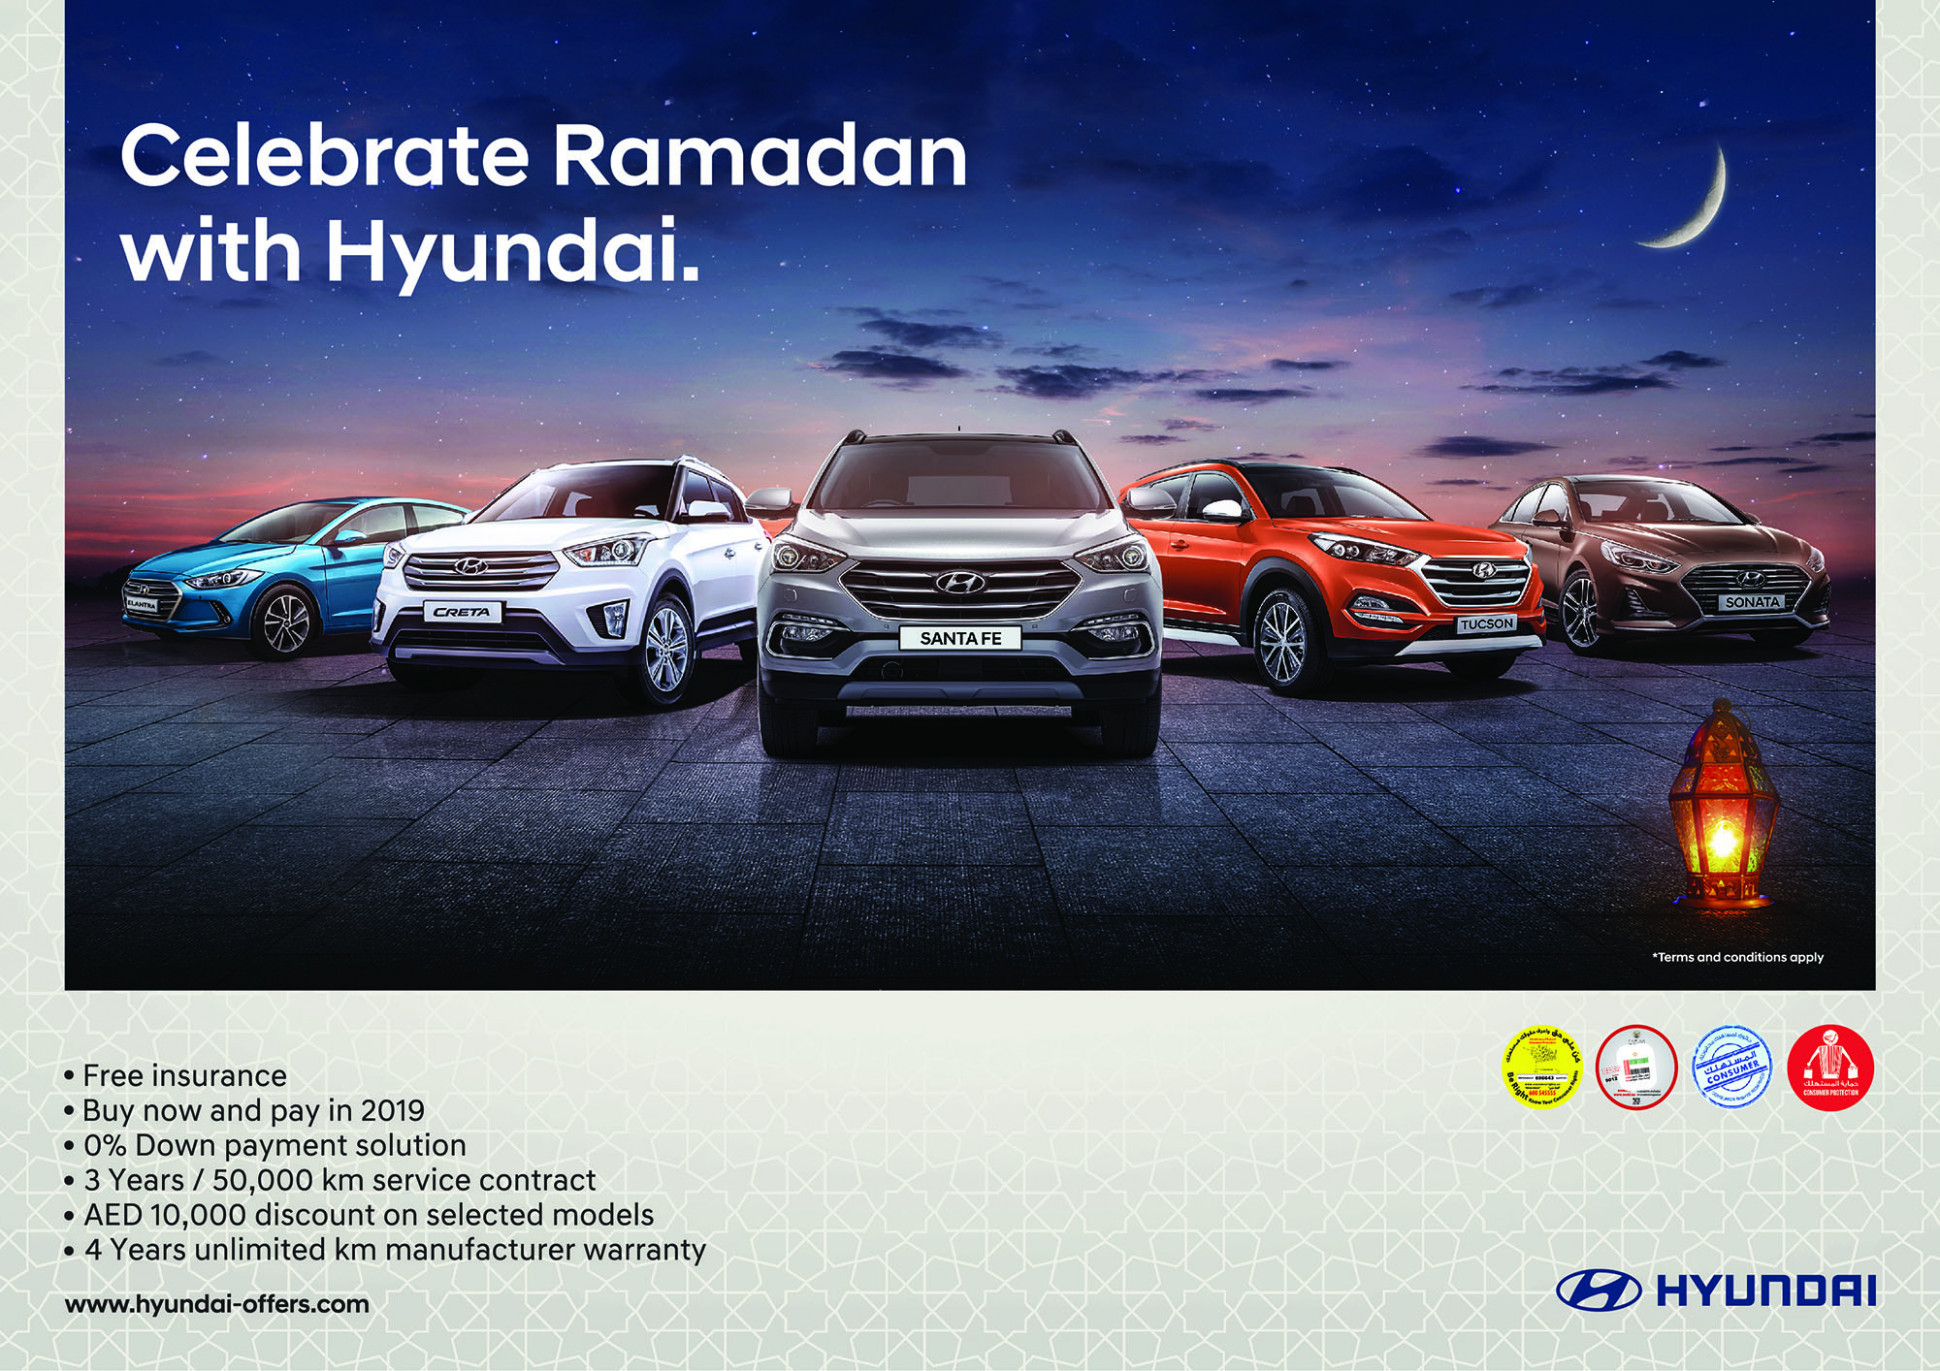 Hyundai's 8 Ramadan Offers In The UAE - CarPrices.ae